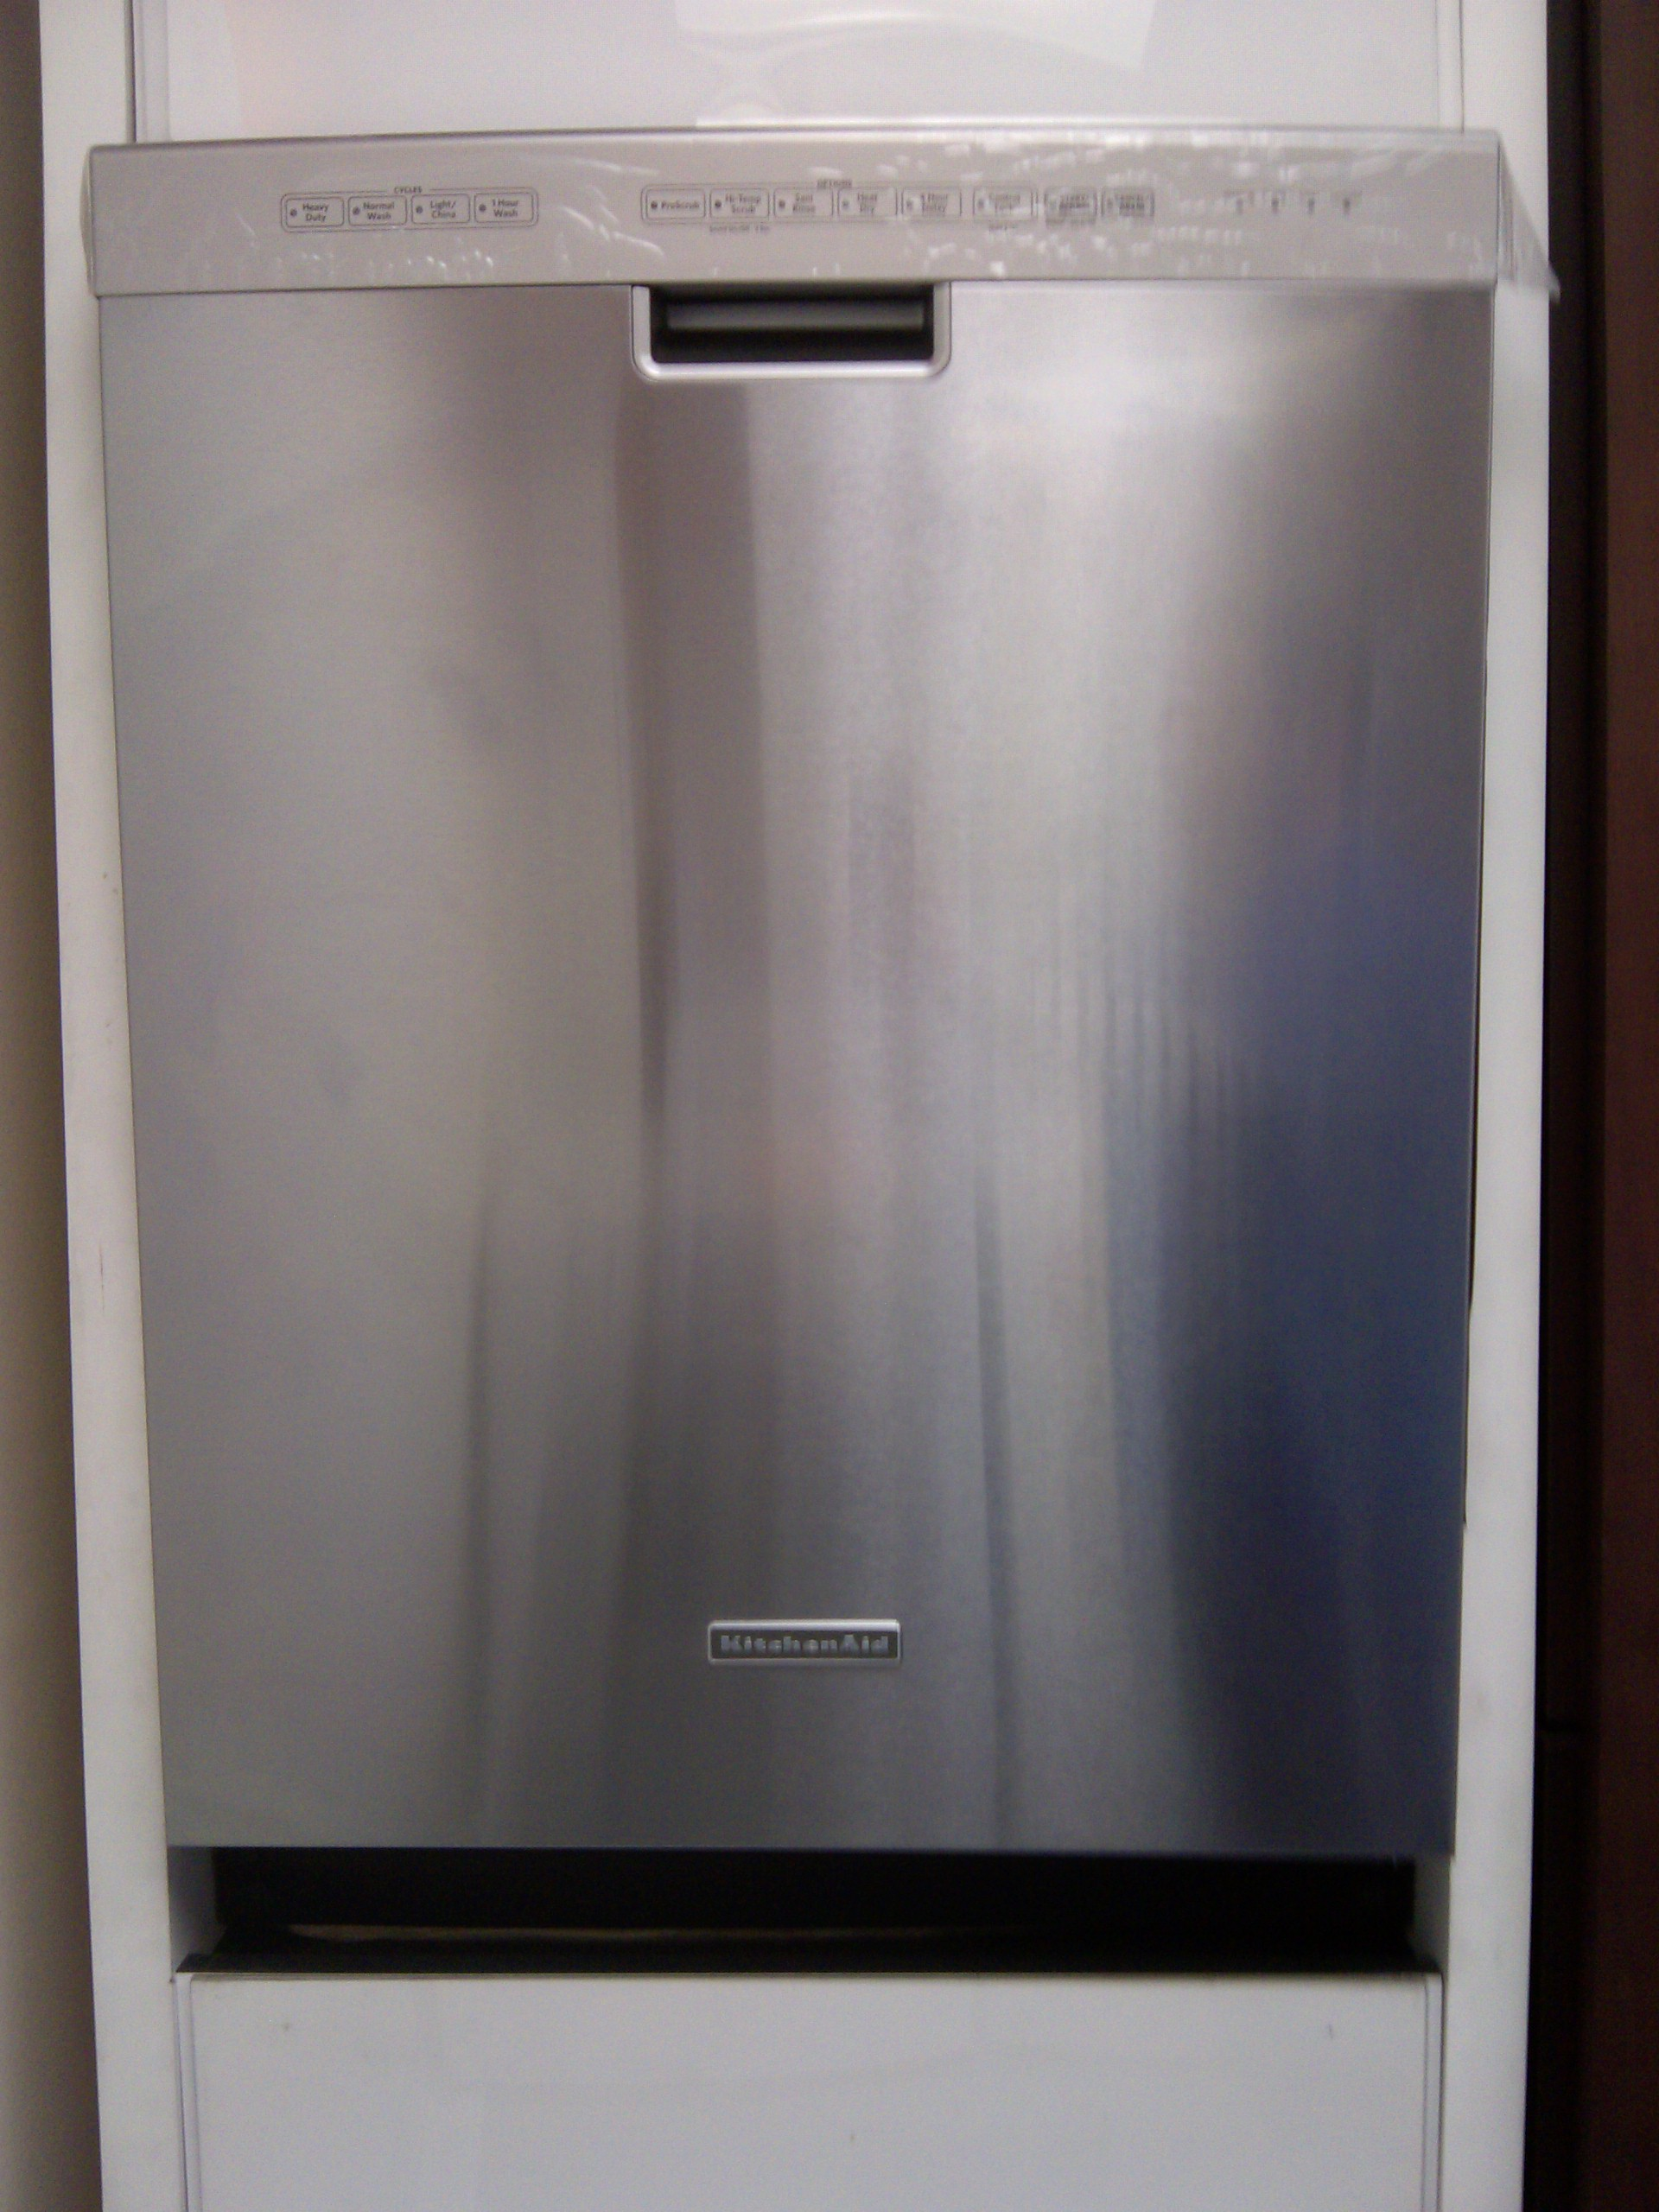 9) KitchenAid KUDS30IXSS 24″ Built-In Dishwasher, Stainless ...